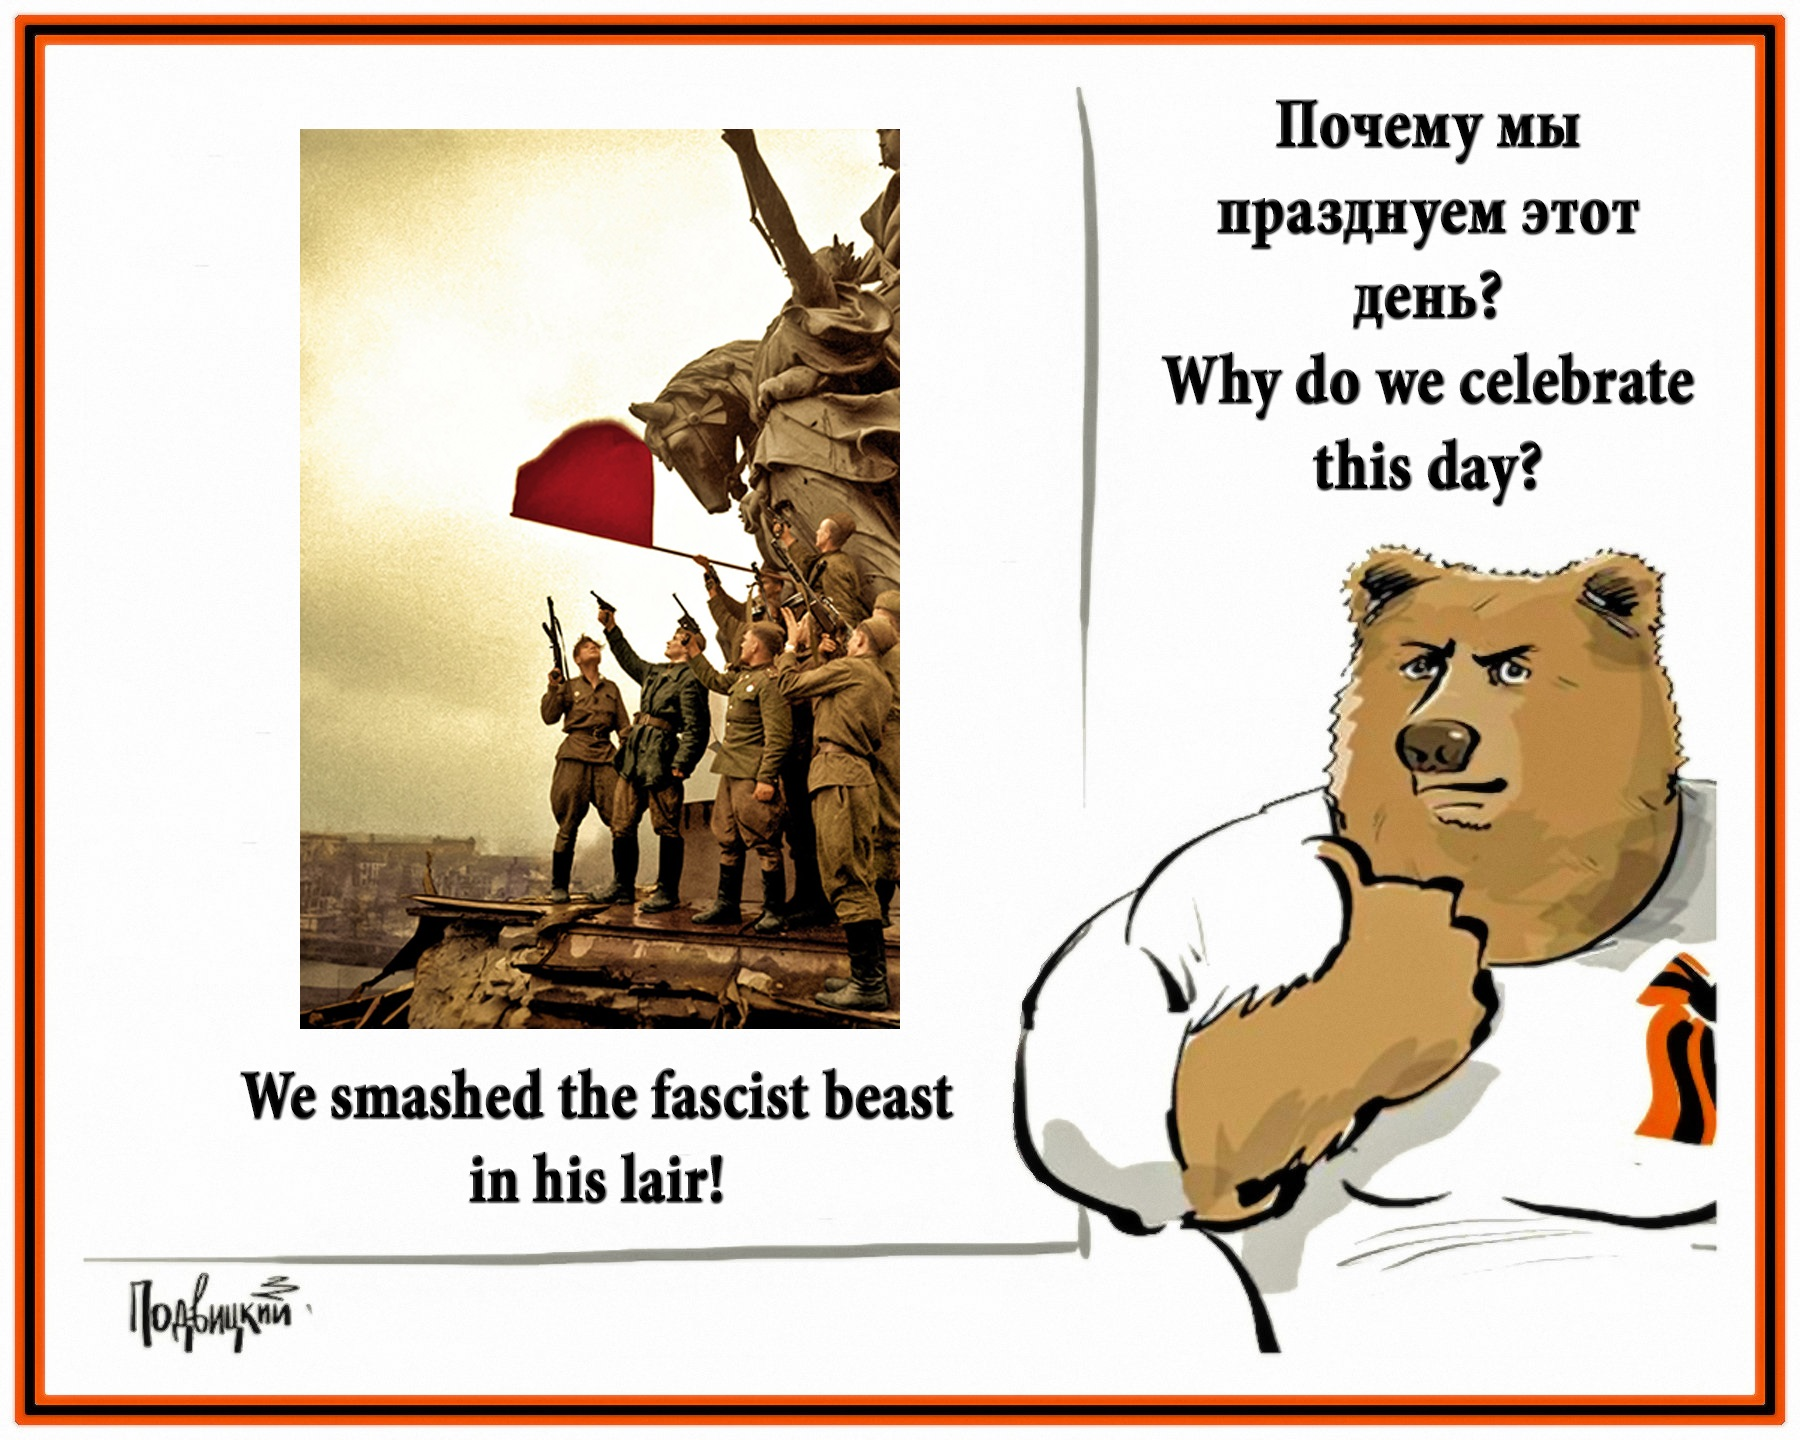 00 Why Do We Celebrate This Day. WE SMMASHED THE FASCIST BEAST. 070516